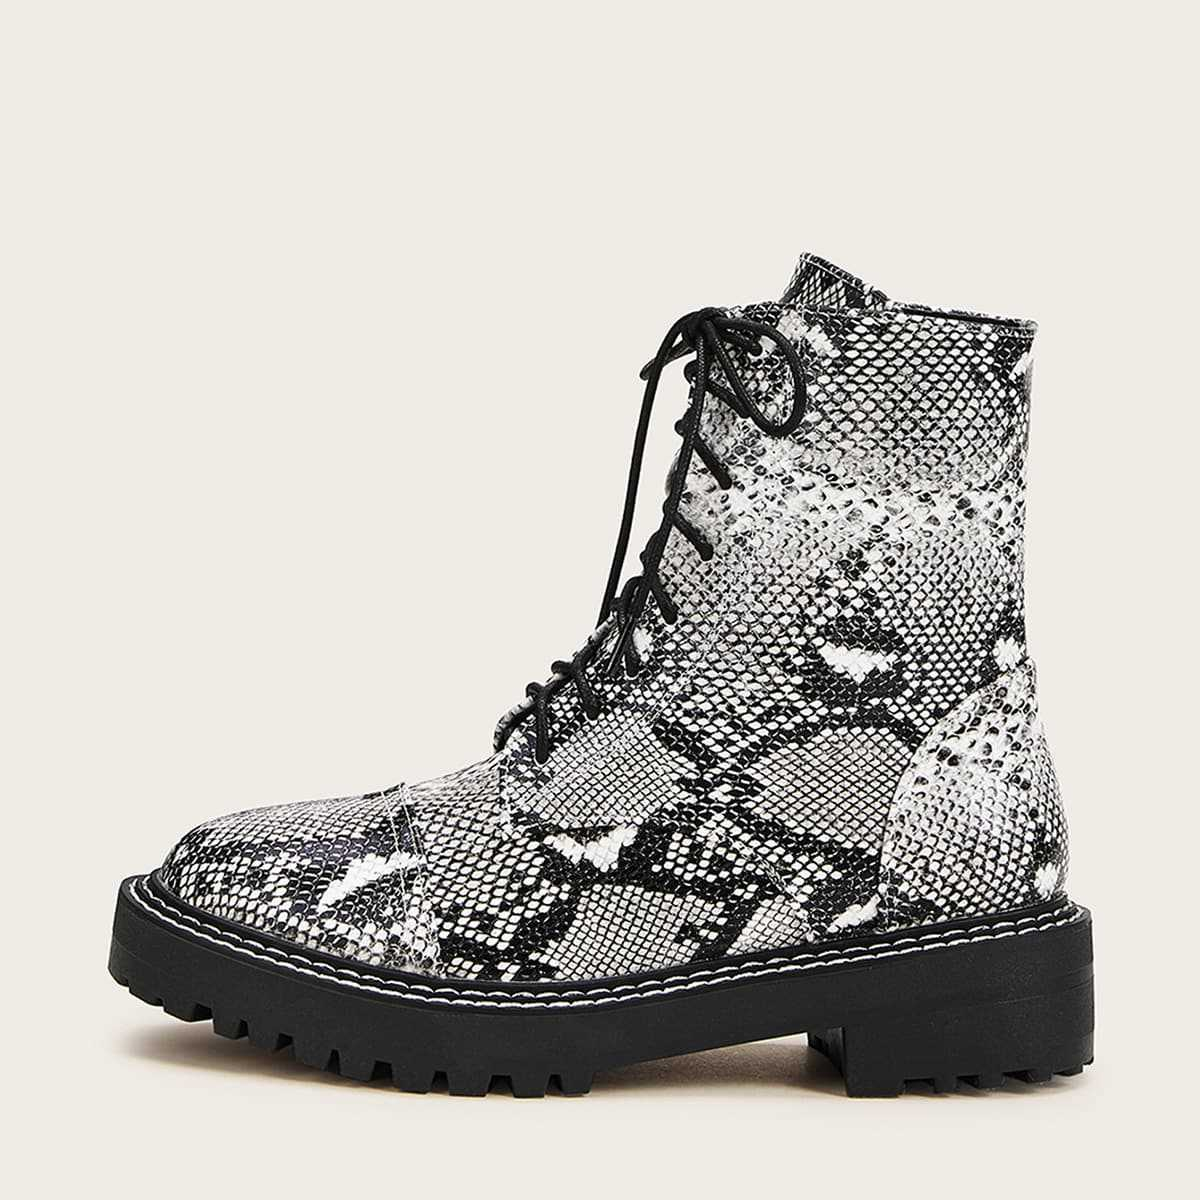 Lace-up Front Snakeskin Ankle Boots in Multicolor by ROMWE on GOOFASH